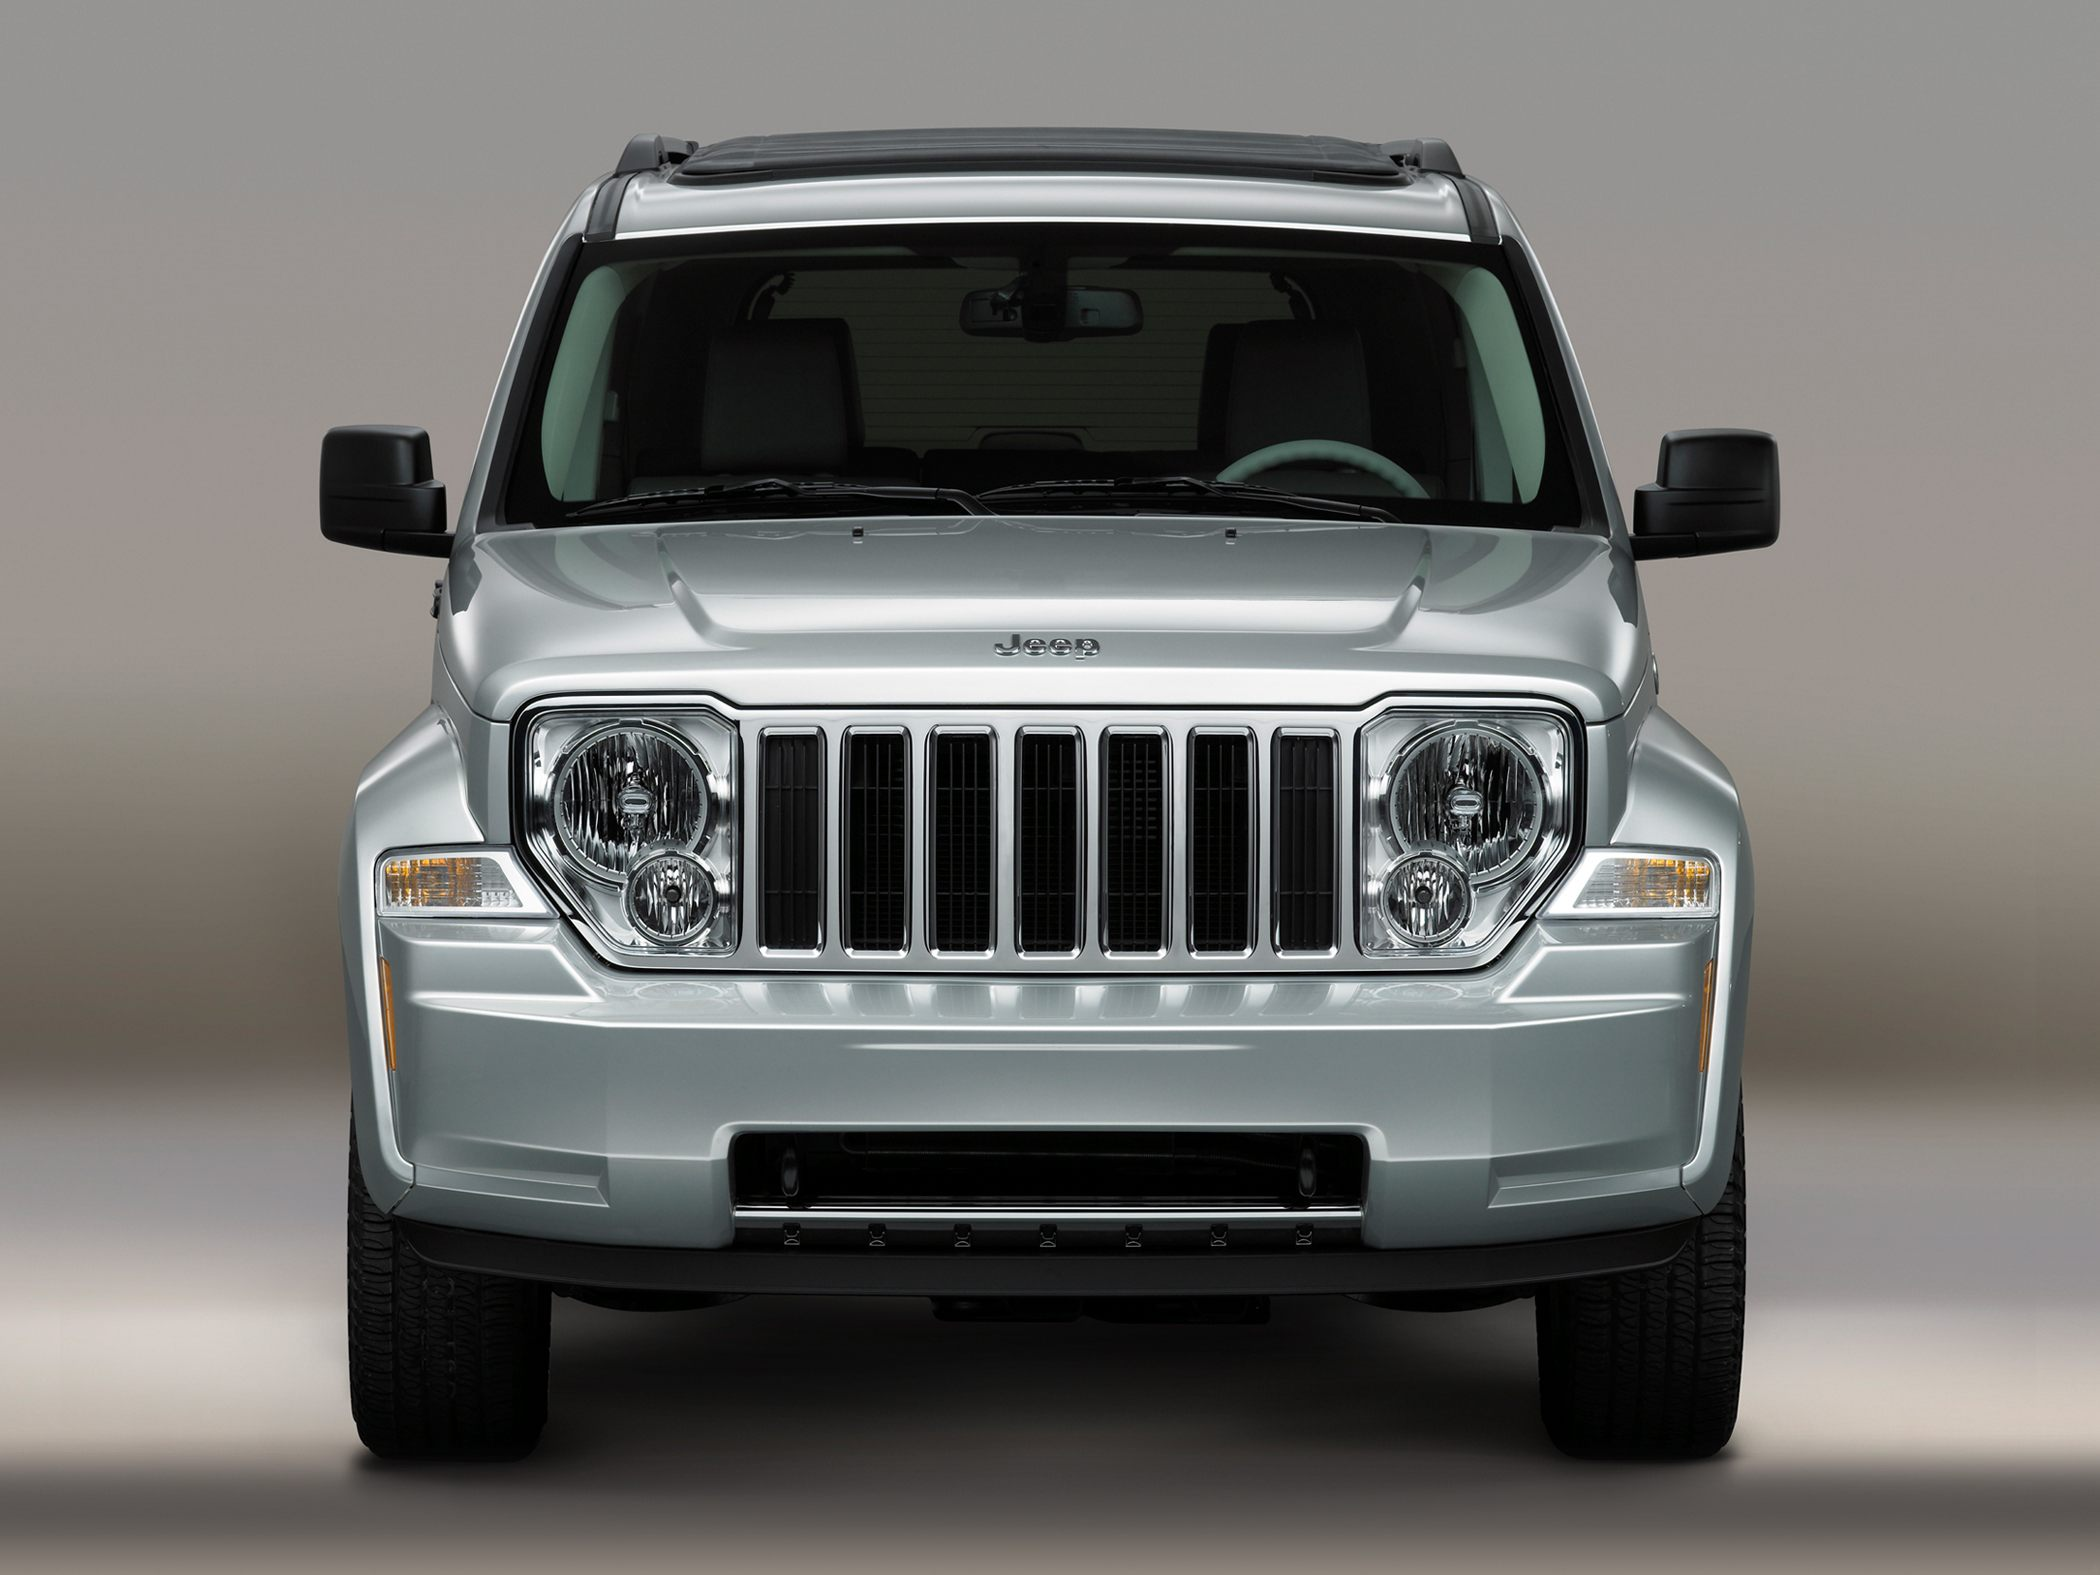 2012 JEEP LIBERTY Image 15